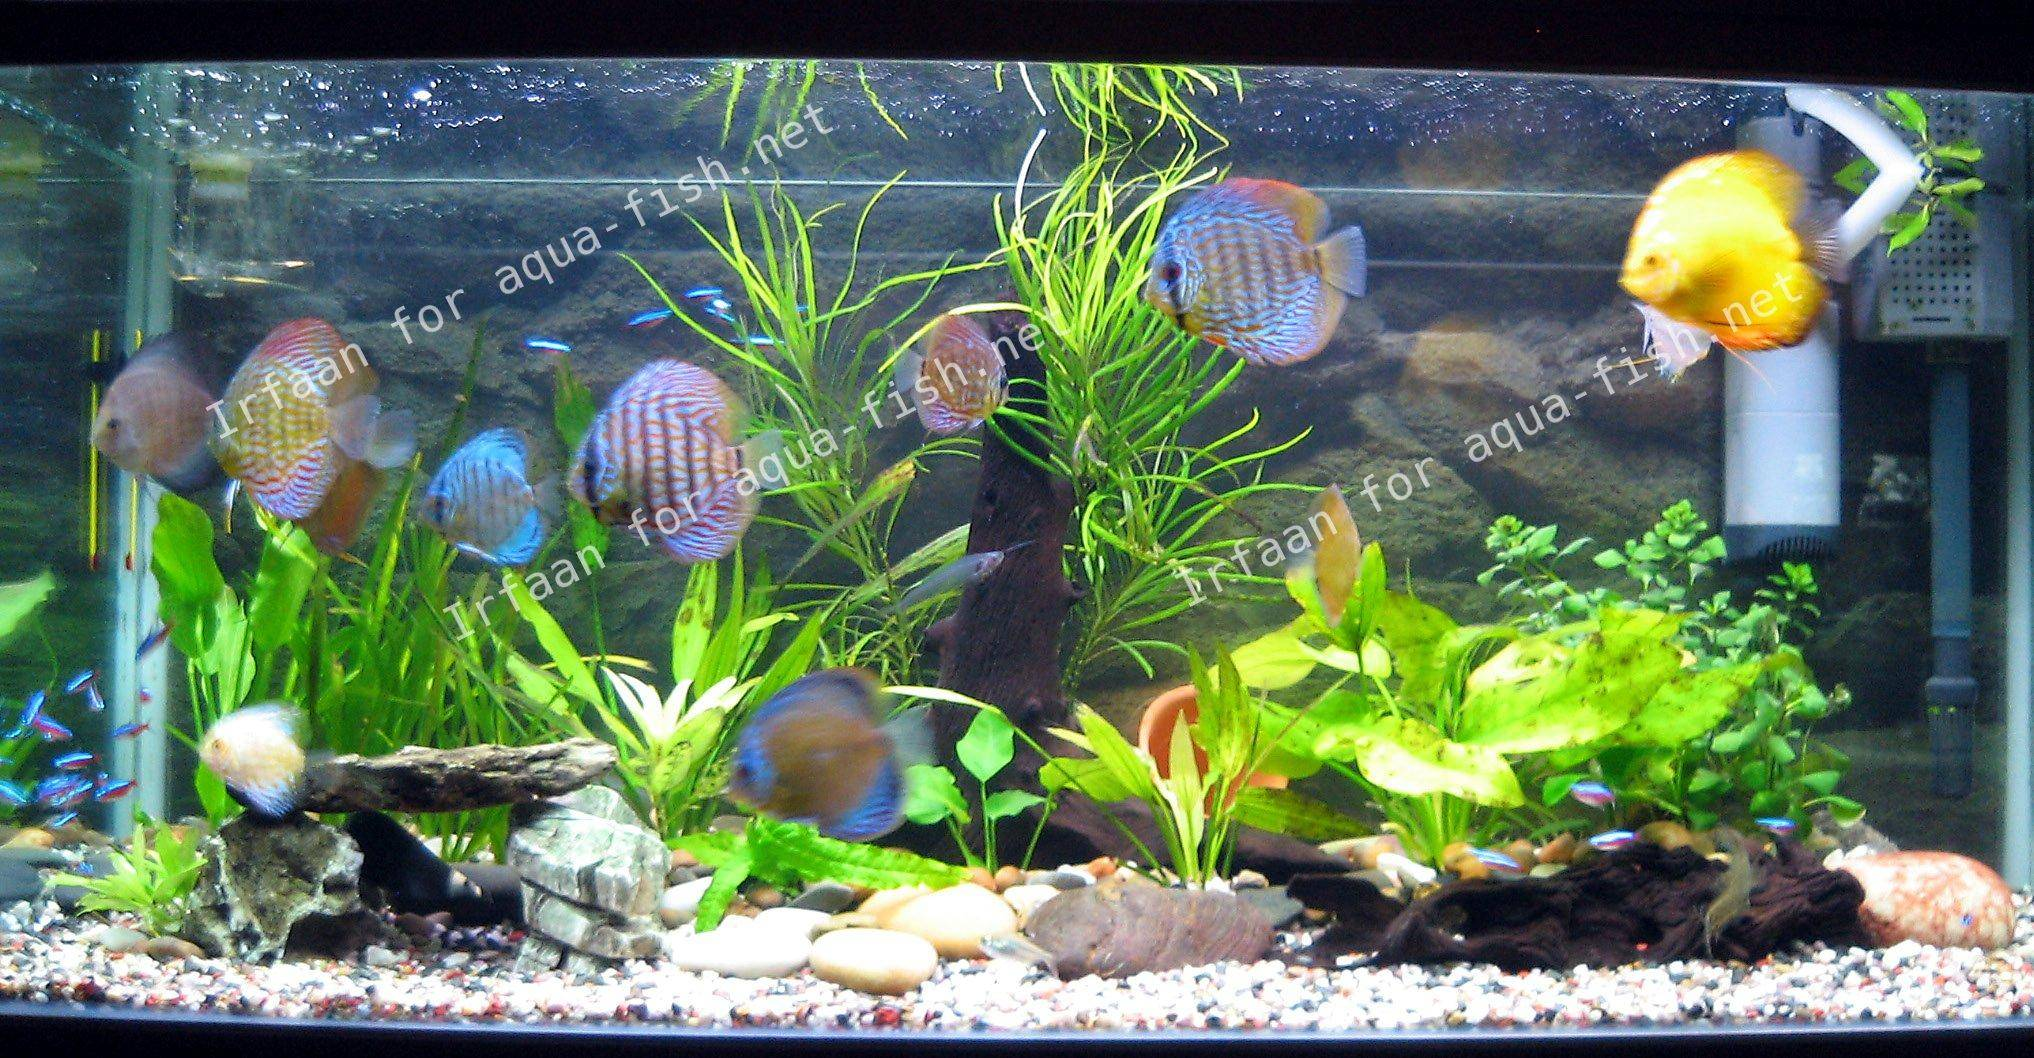 Fabuleux Le poisson Discus OF46